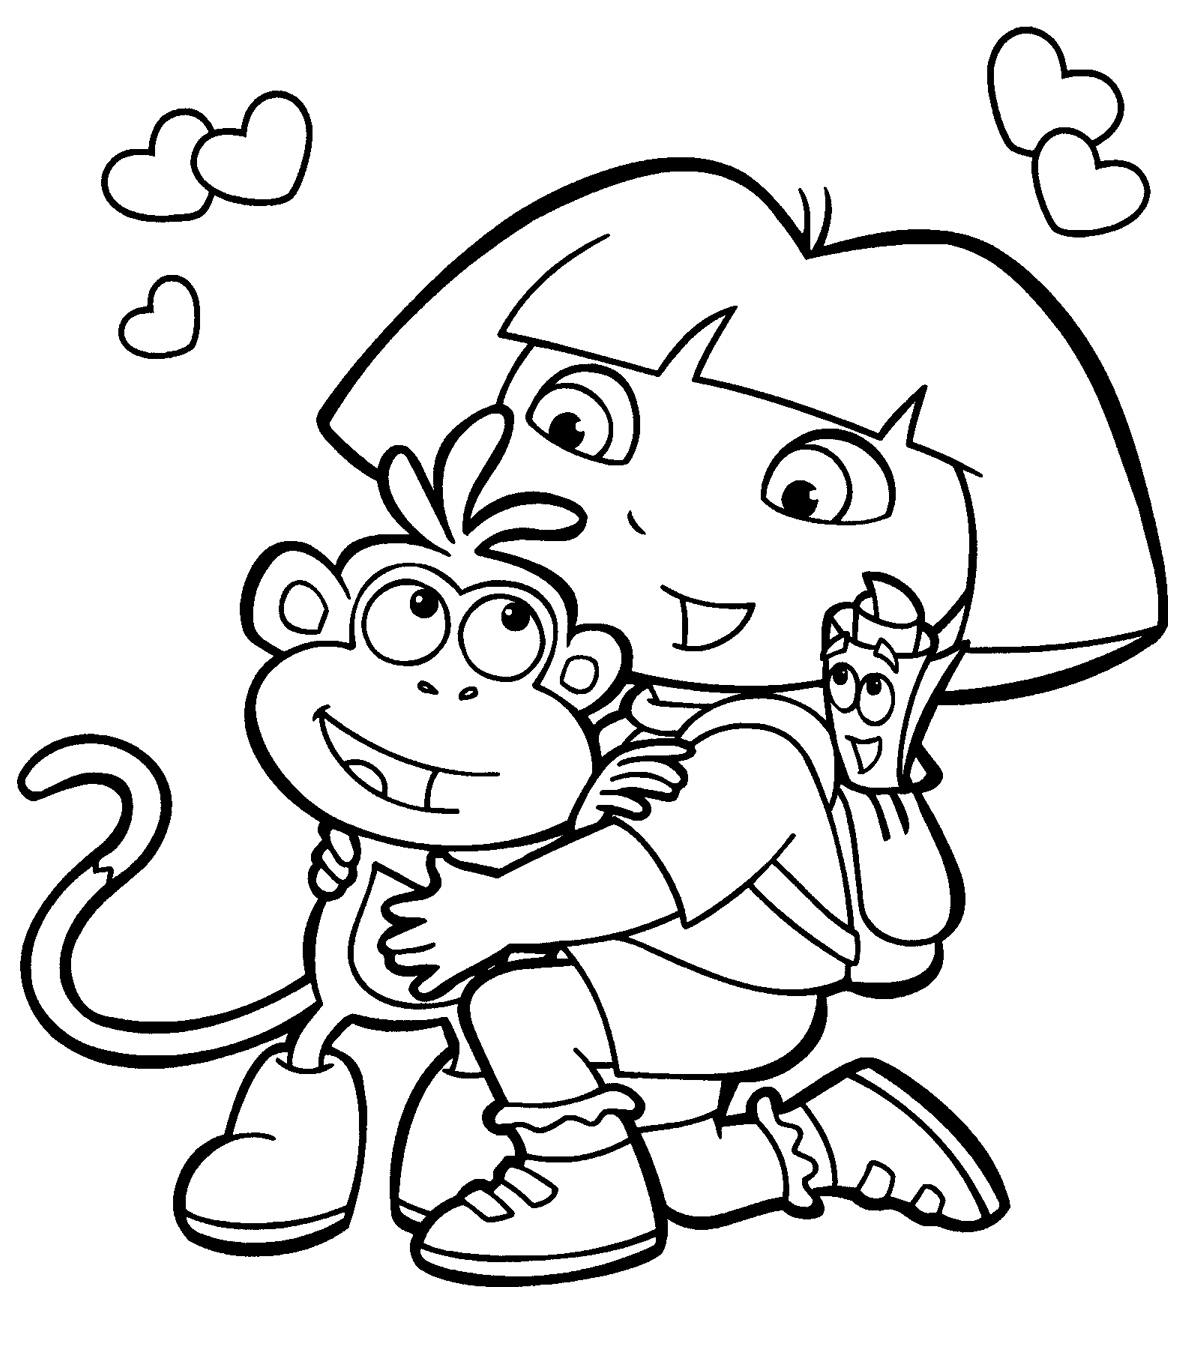 dora the explorer coloring page - Toddler Coloring Sheets Free Printables